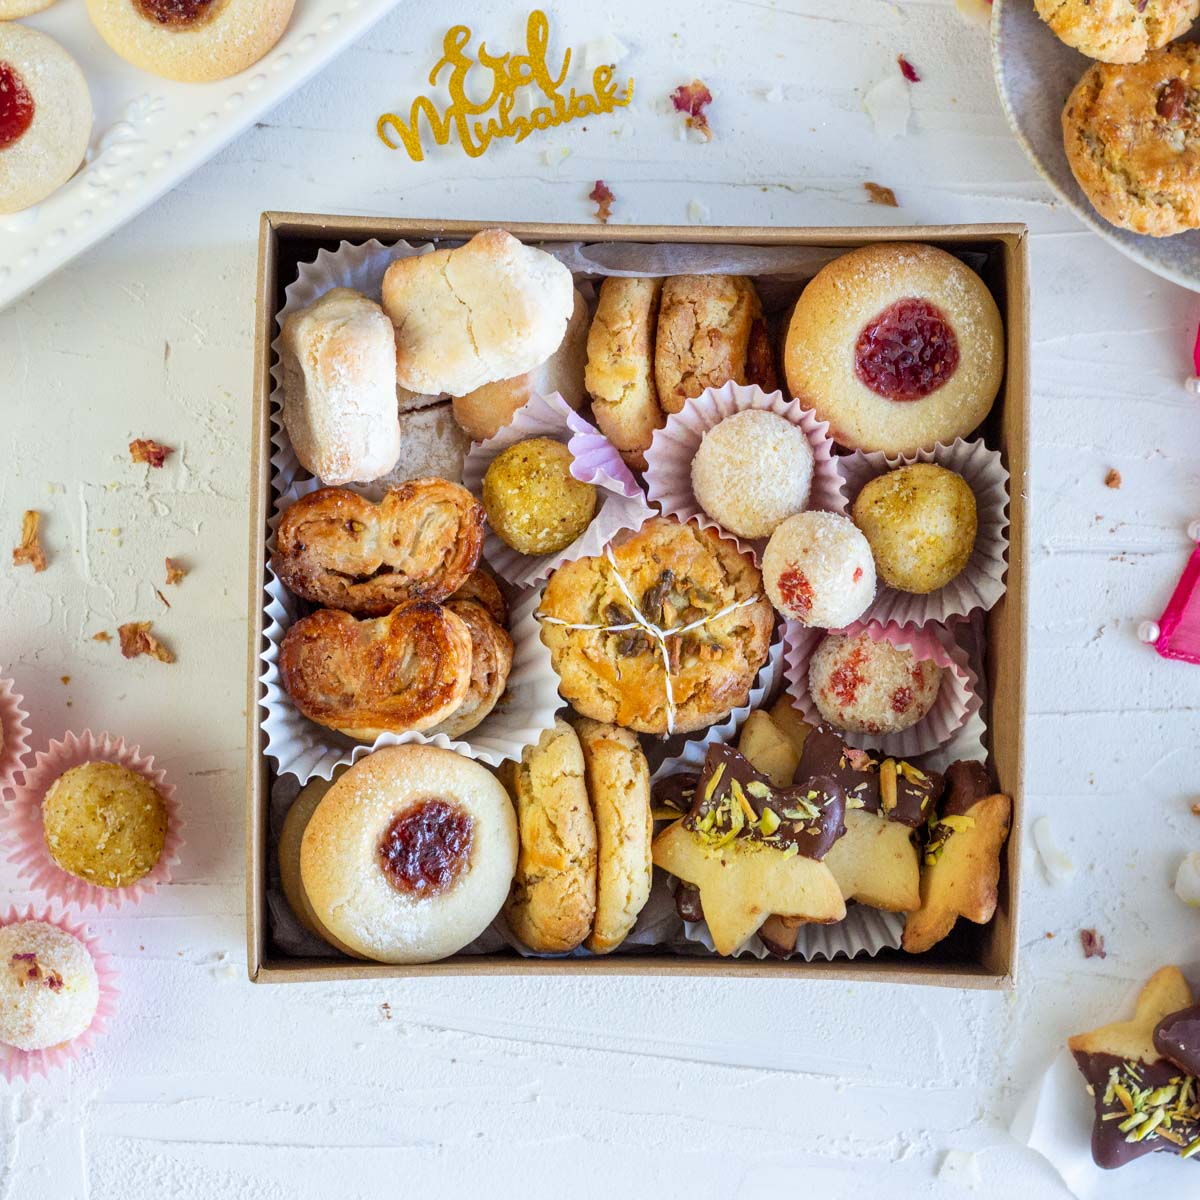 An Eid cookie box with an assortment of cookies. Clockwise from top left are Italian almond cookies, nan khatai, thumbprint jam cookies, coconut laddo, cardamom shortbread cookies with dark chocolate and pistachio, nan khatai and cinnamon palmers with nuts.